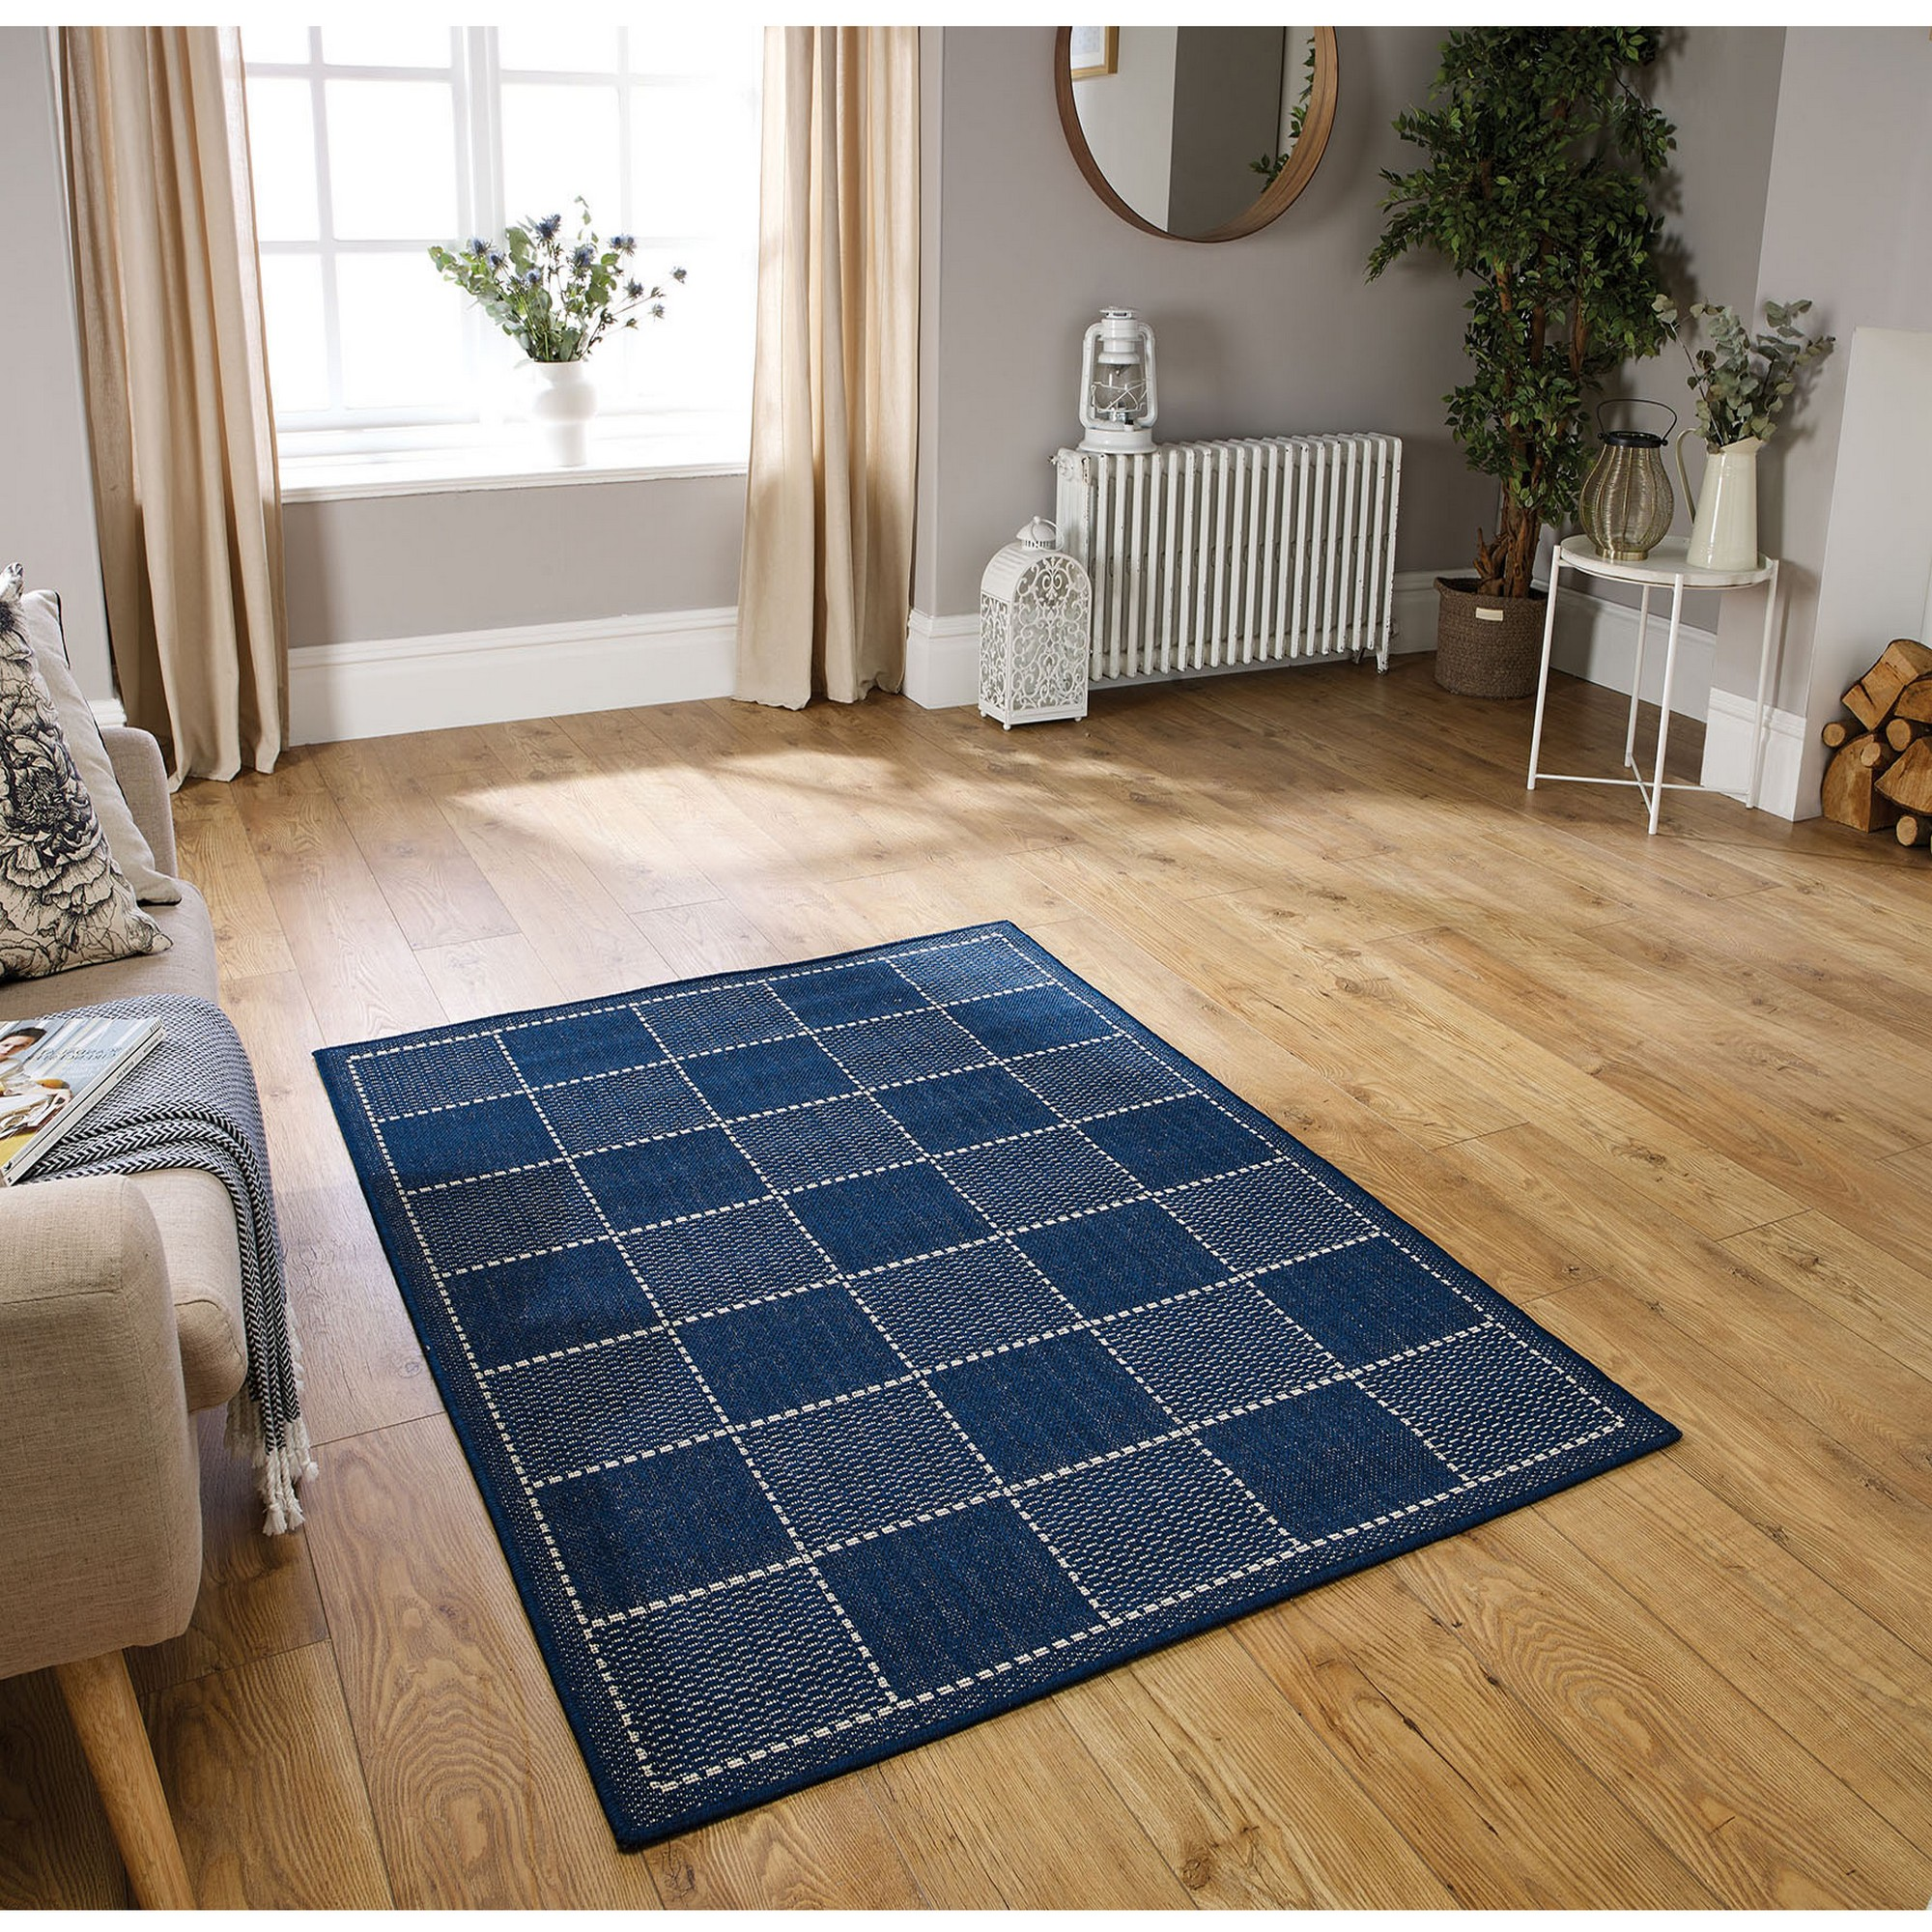 Blue Kitchen Rug: Super Sisalo Anti Slip Kitchen Rugs In Blue